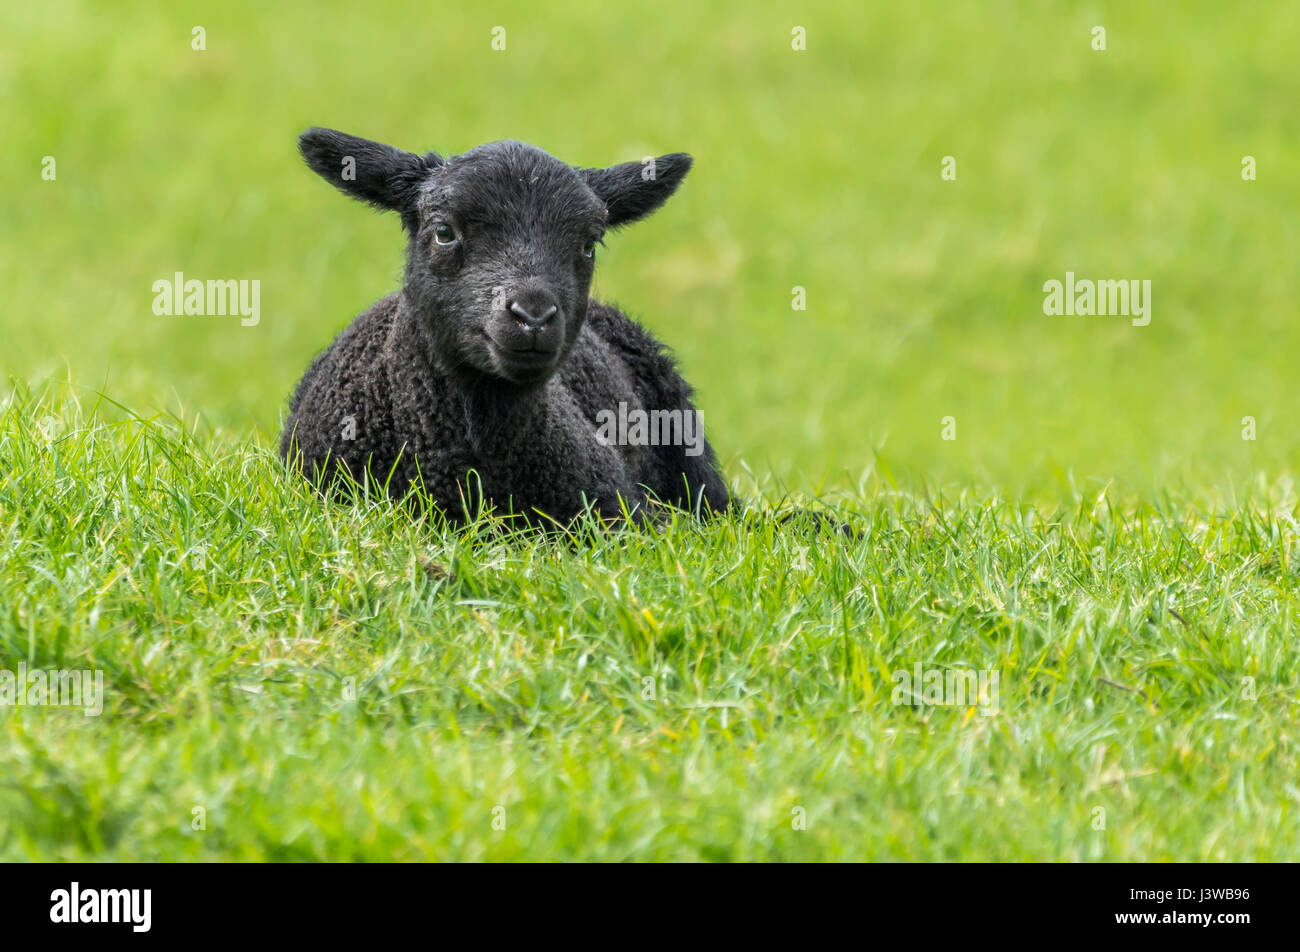 taking-a-break-concept-black-lamb-restin